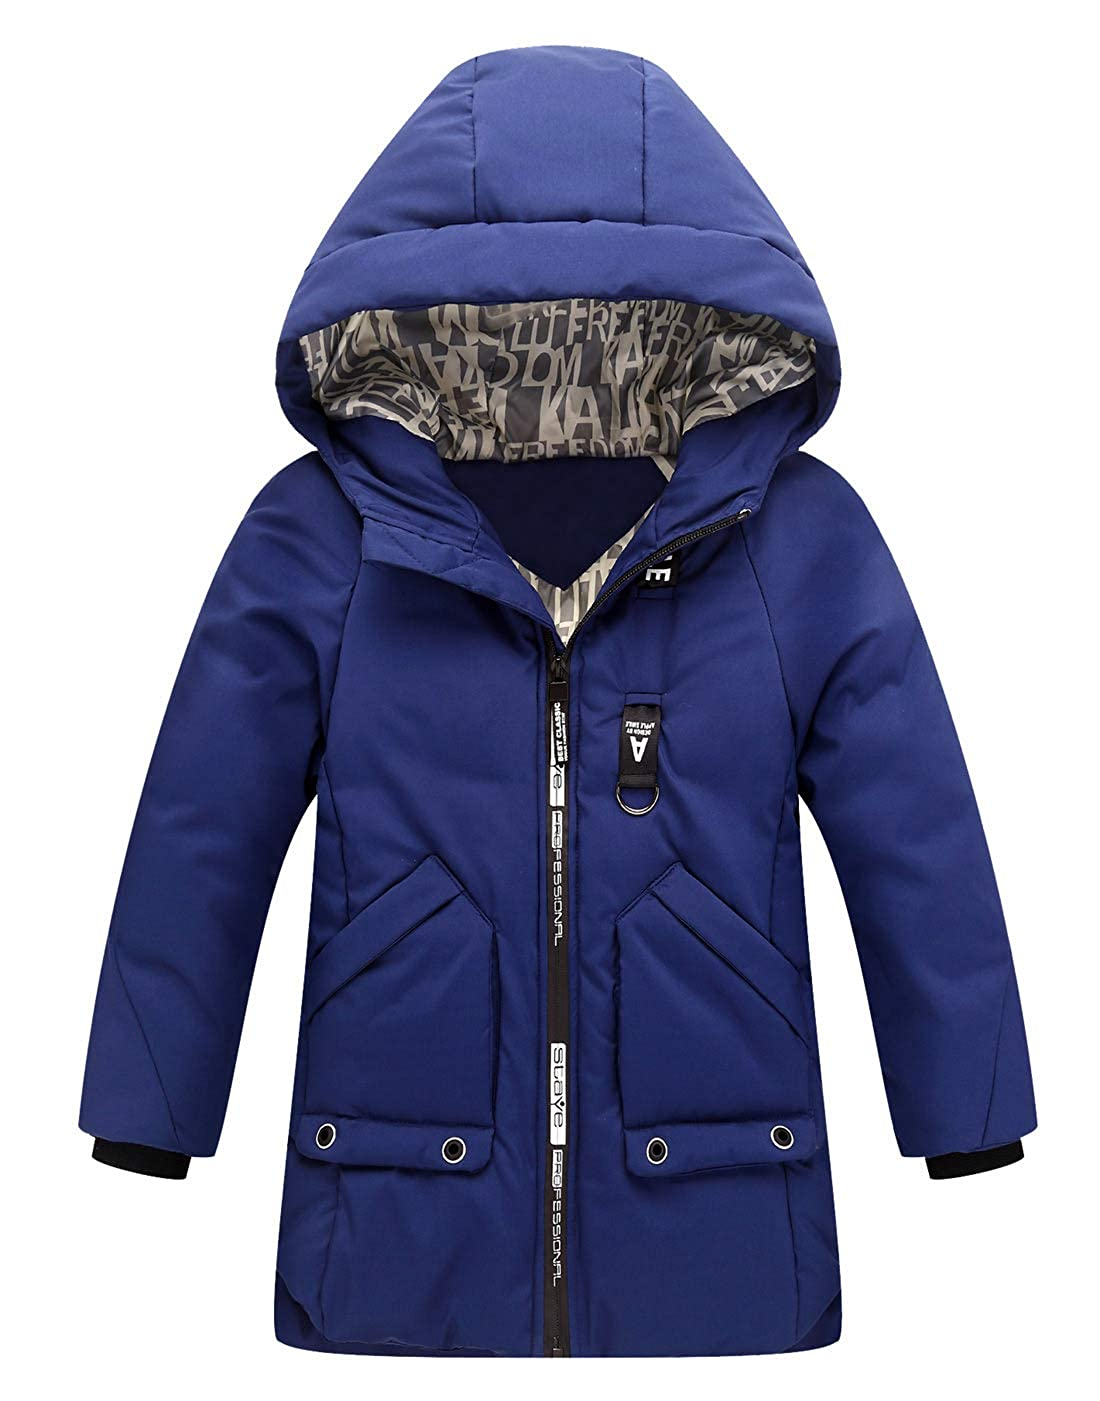 Aivtalk Boys Winter Warm Coats Stylish Hooded Jacket Windproof Thick Outerwear